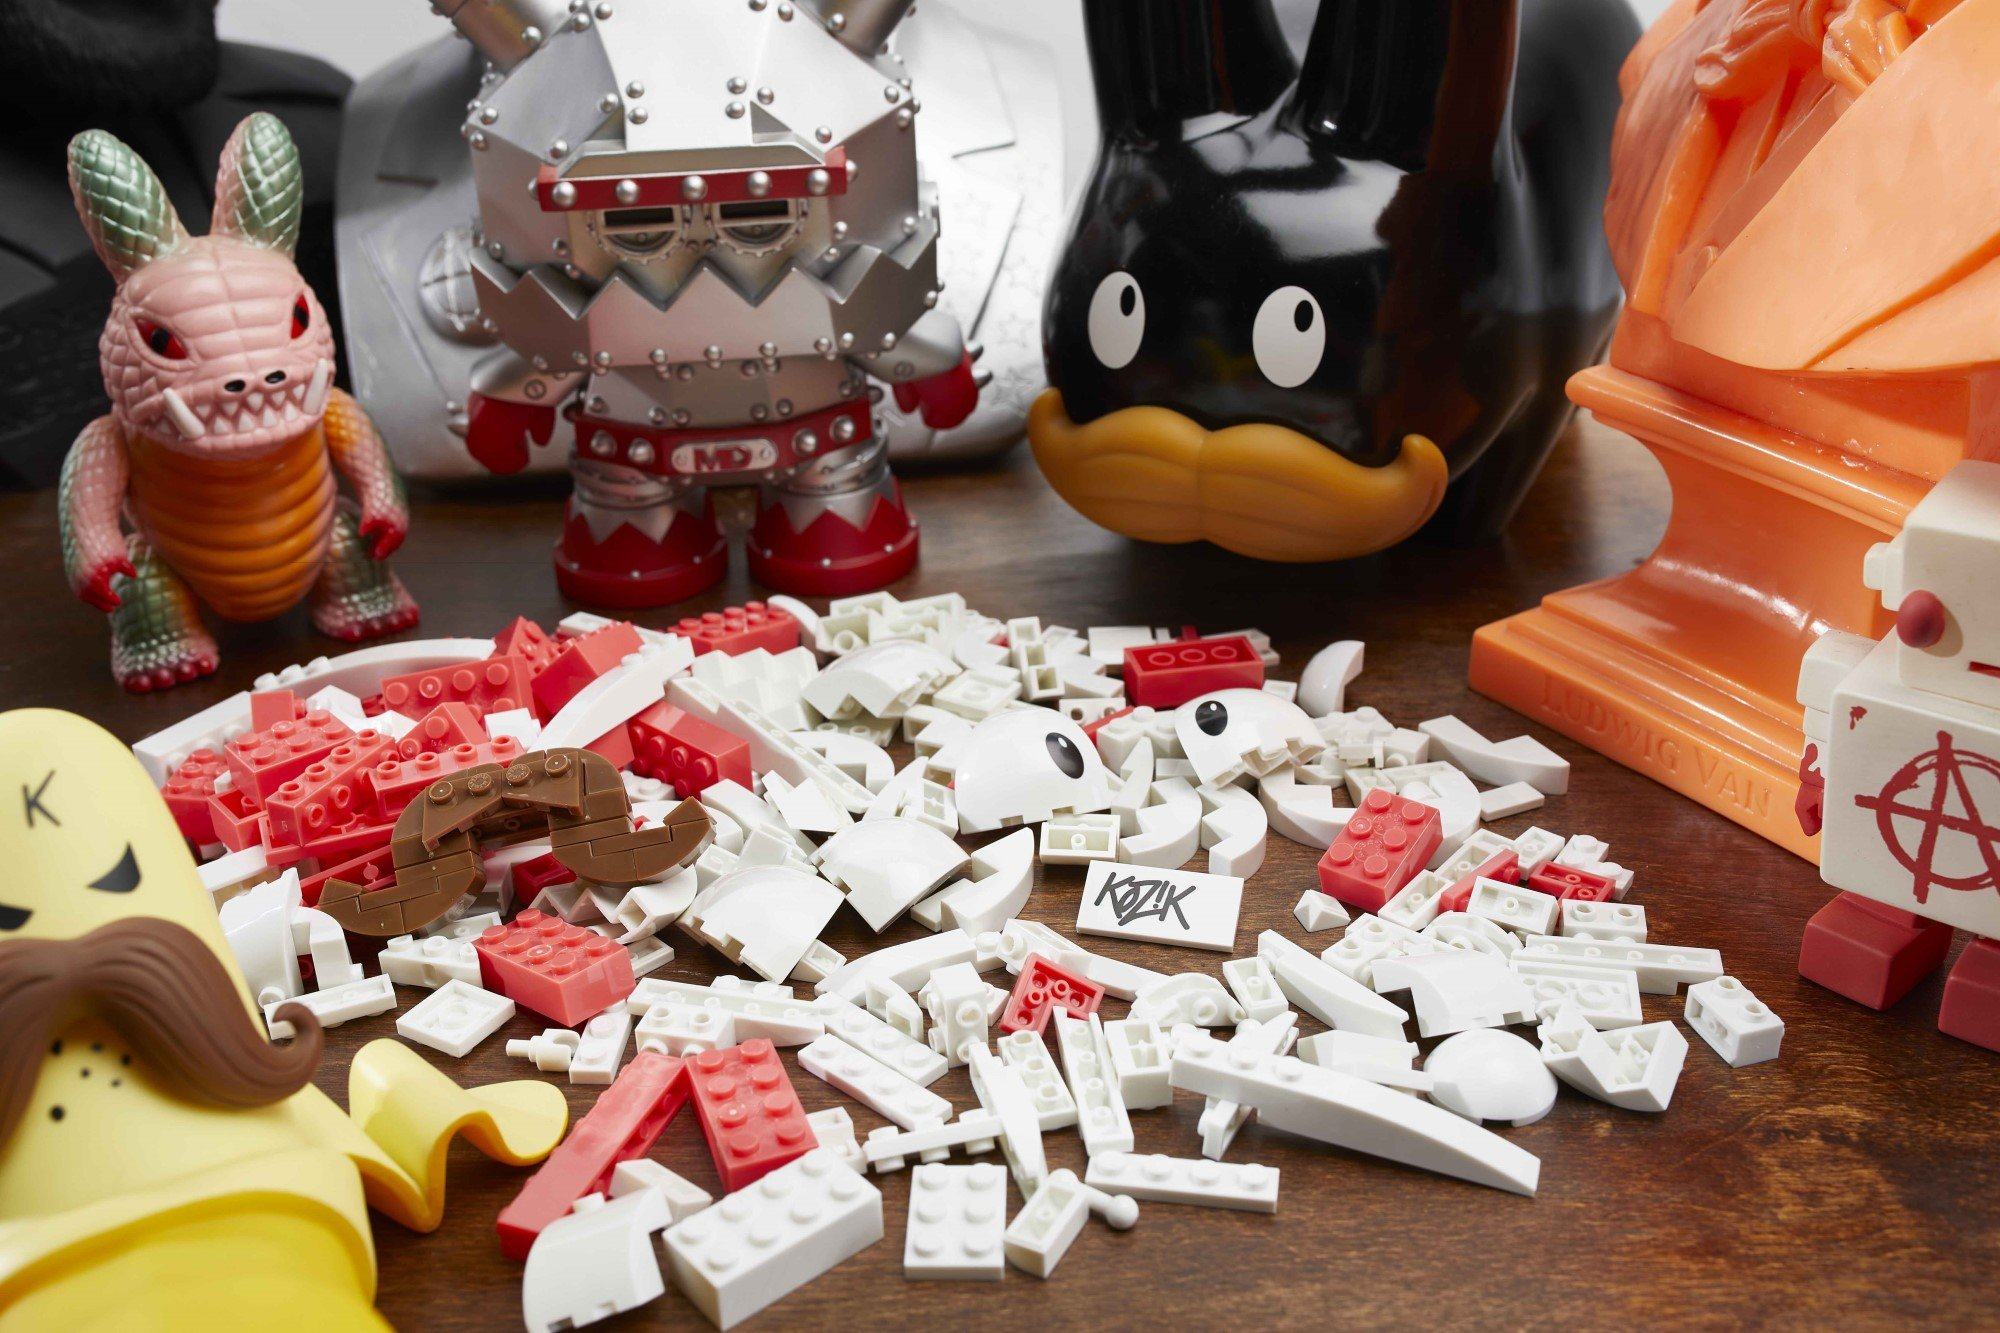 MEGA collabs with Frank Kozik for a build-your-own Labbit 14